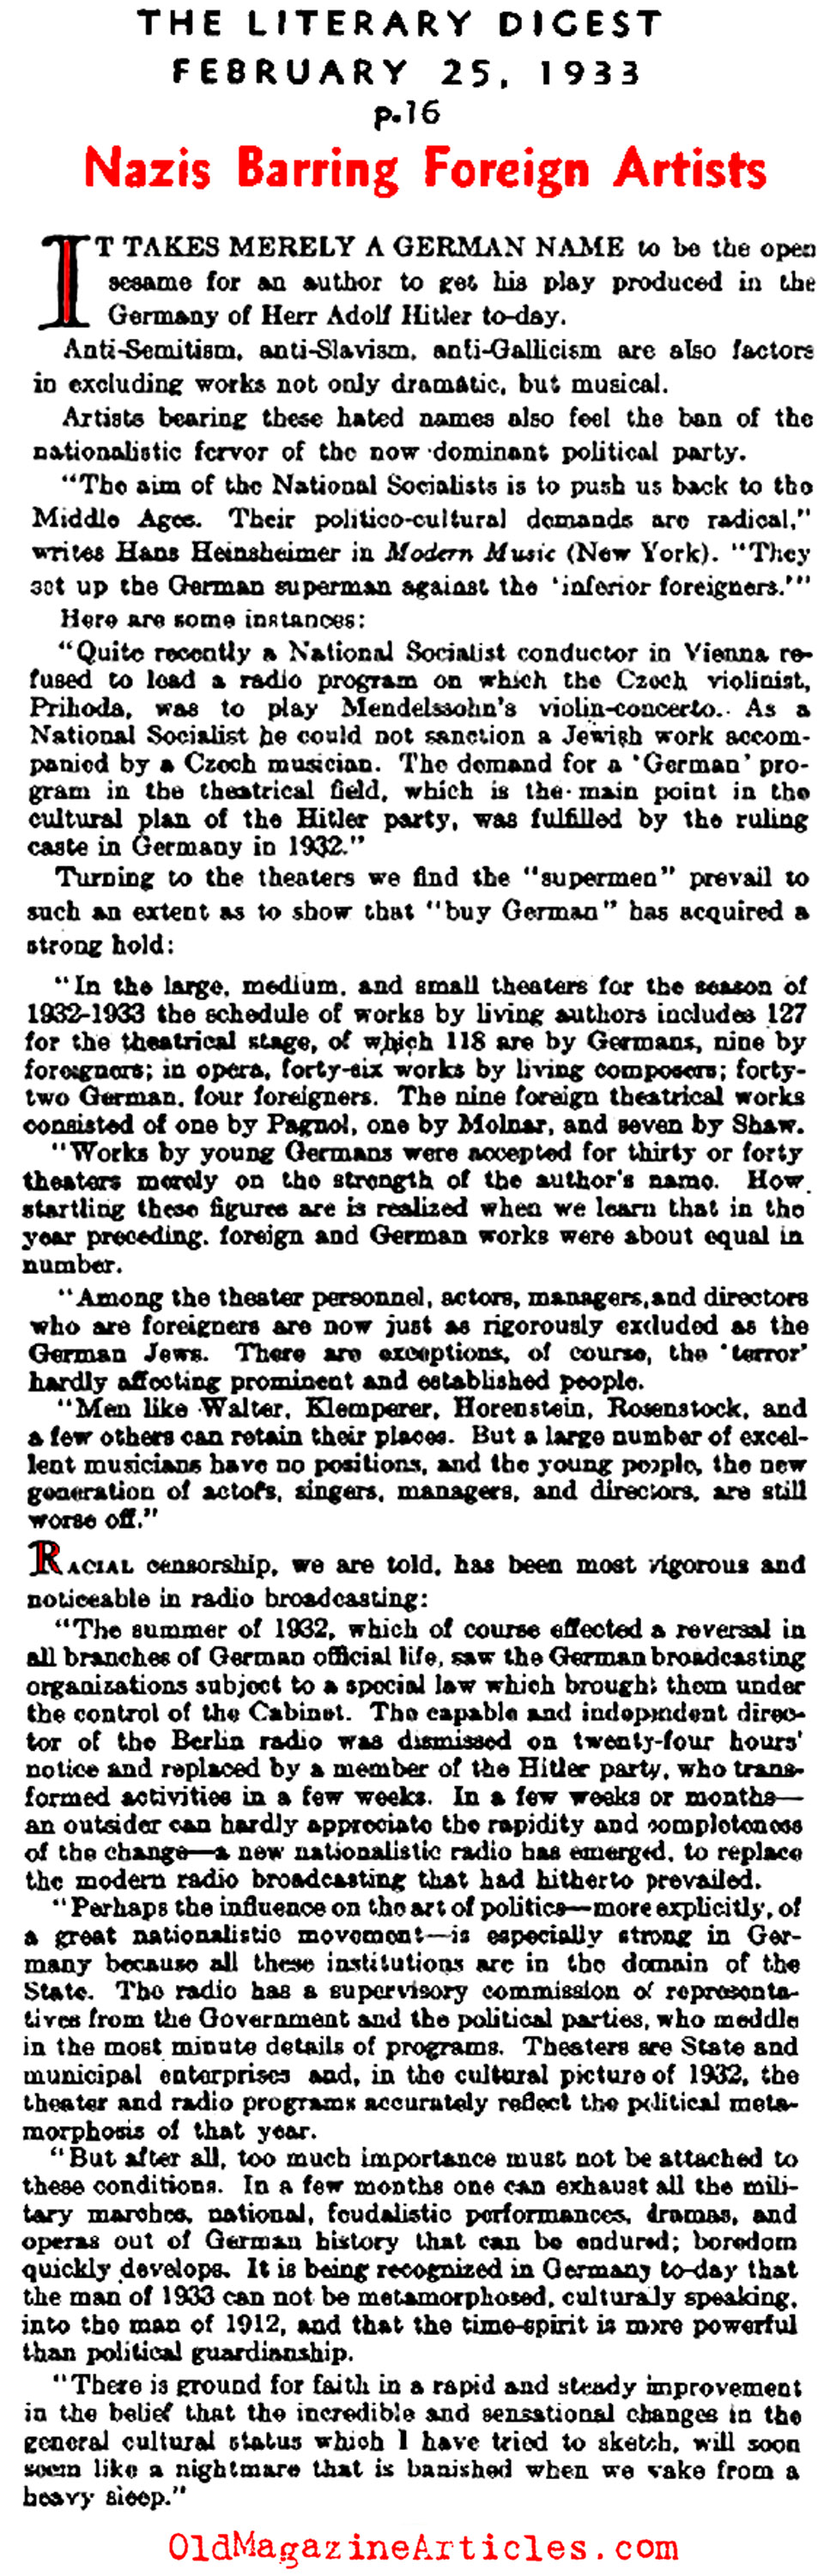 Foreign Artists Barred from Germany (Literary Digest, 1933)